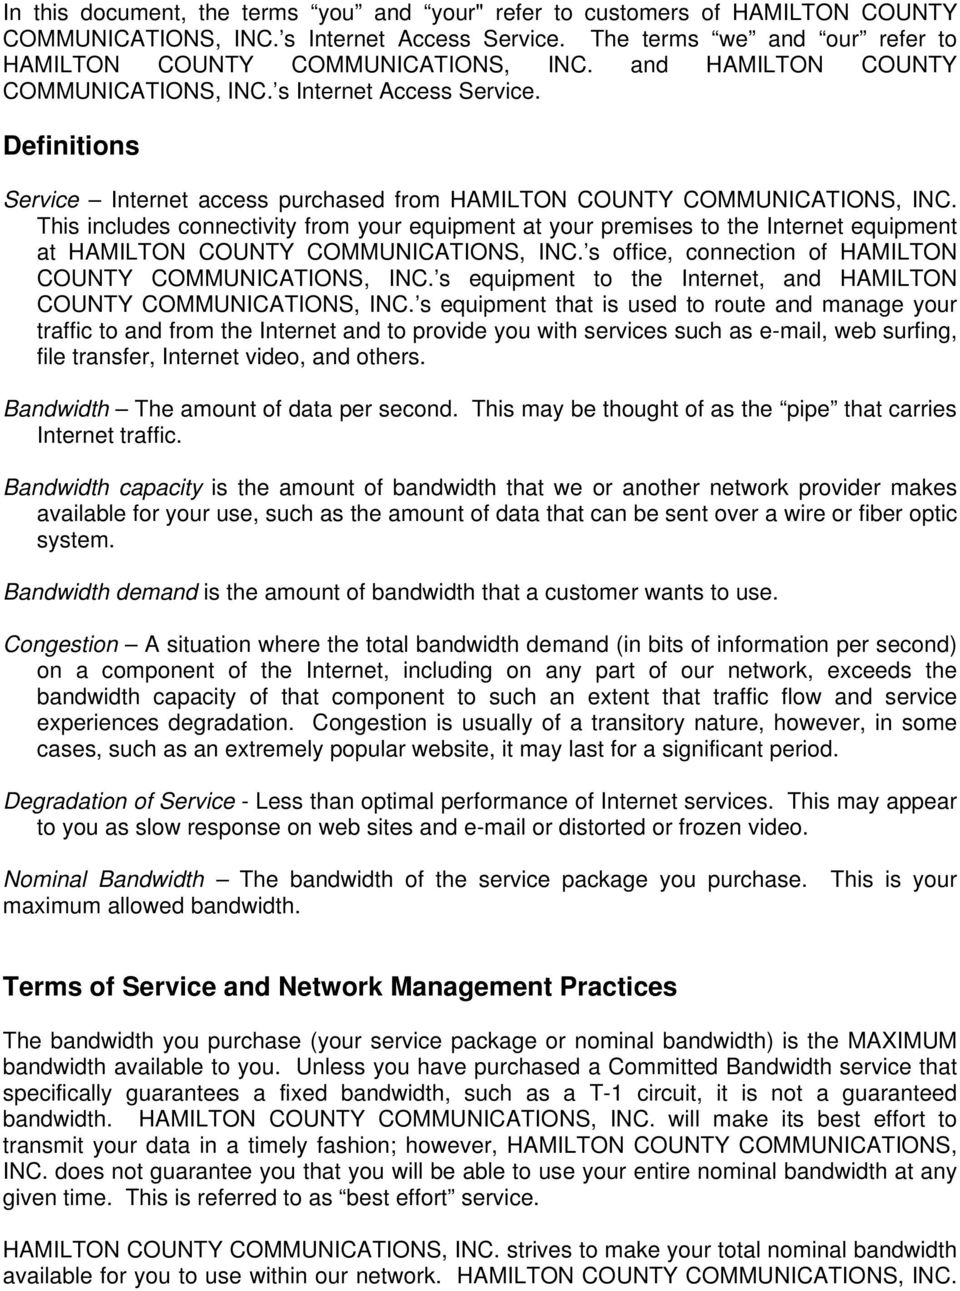 Hamilton County Communications, Inc  NETWORK POLICY AND